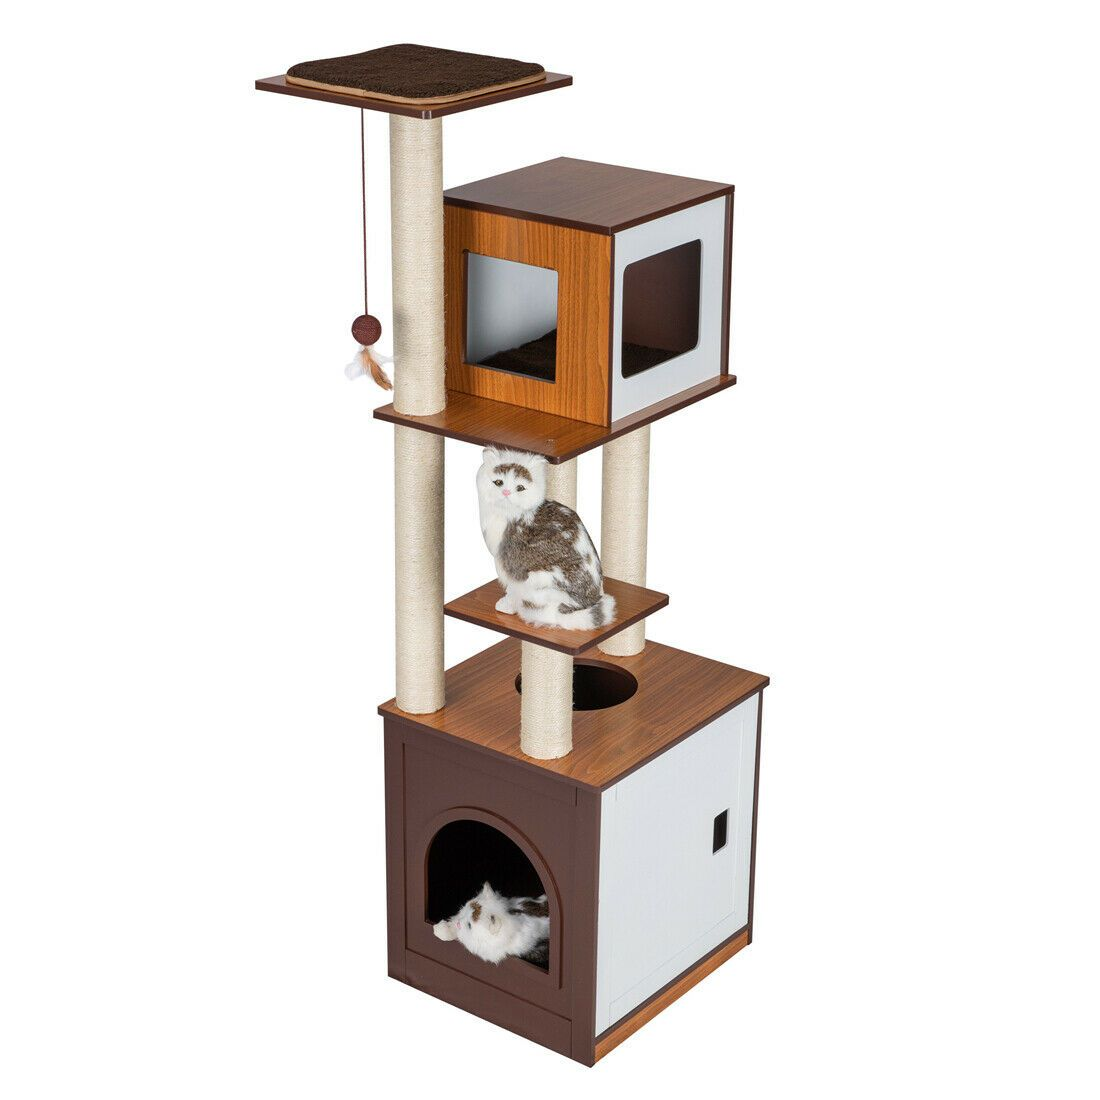 Gldf 60 Modern Deluxe Wood Cat Tree Furniture Washroom Condo Play Tower Walmart Com Walmart Com